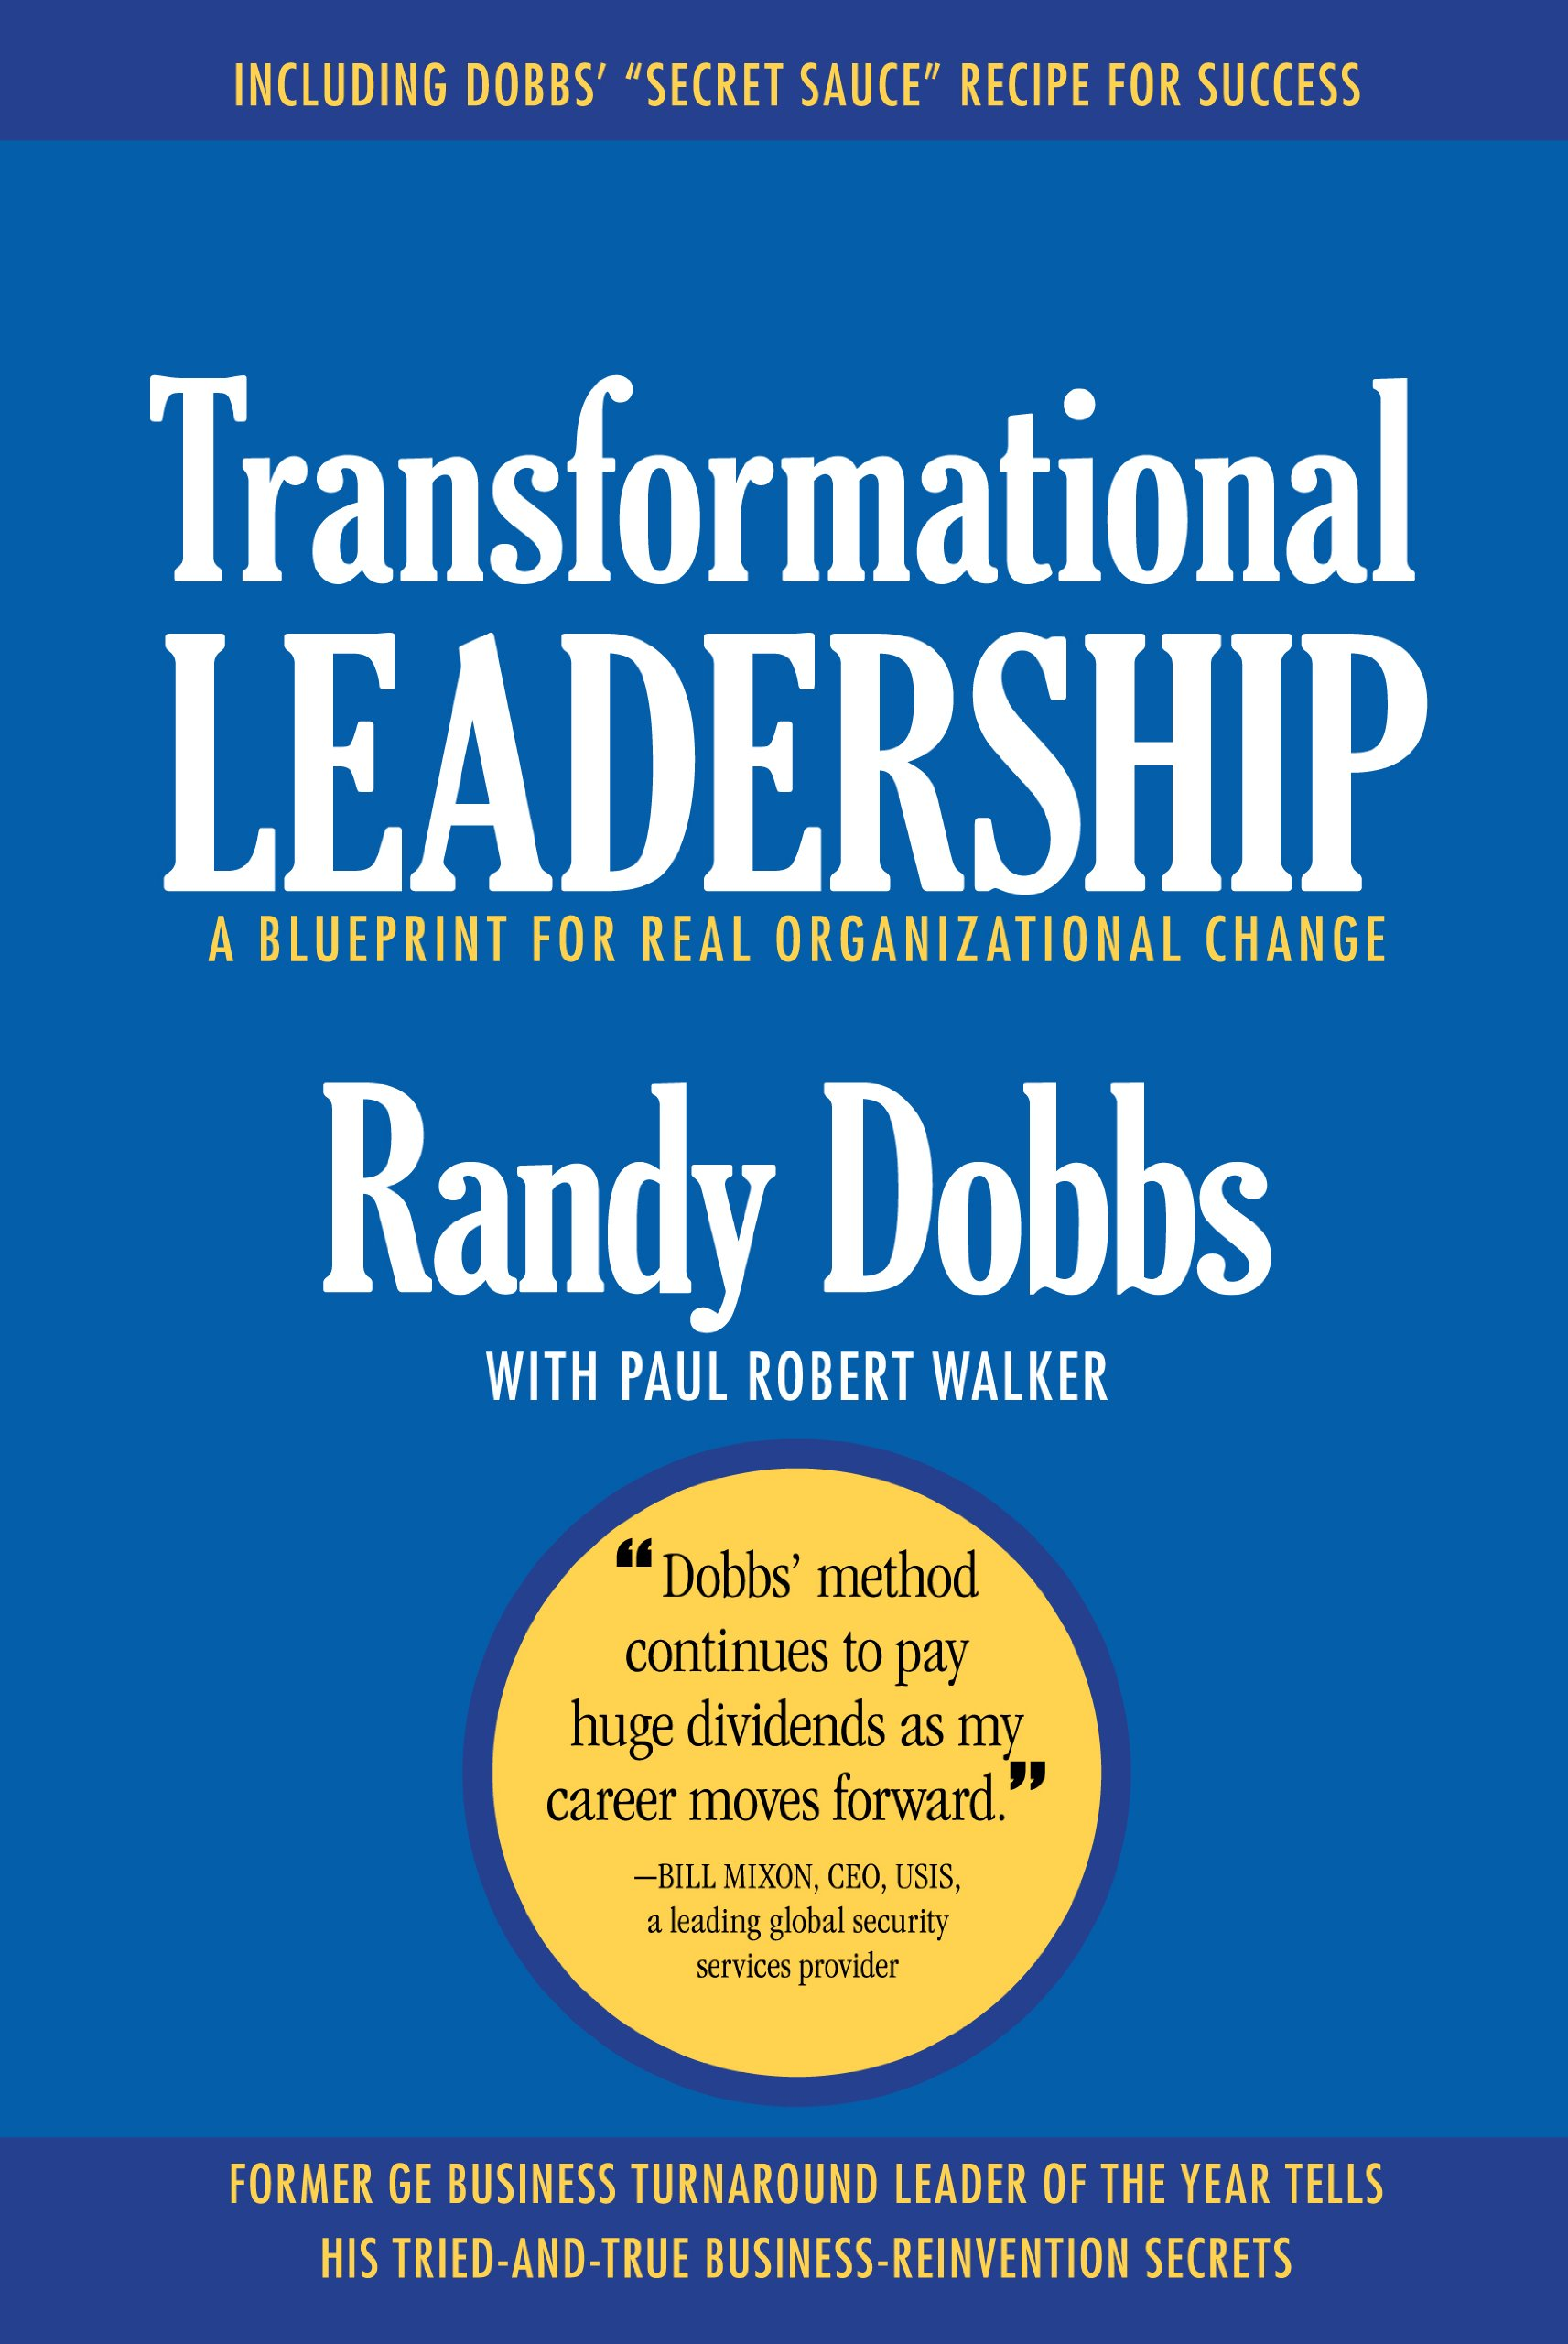 Transformational leadership a blueprint for real organizational transformational leadership a blueprint for real organizational change randy dobbs paul robert walker 9780983080602 amazon books malvernweather Gallery